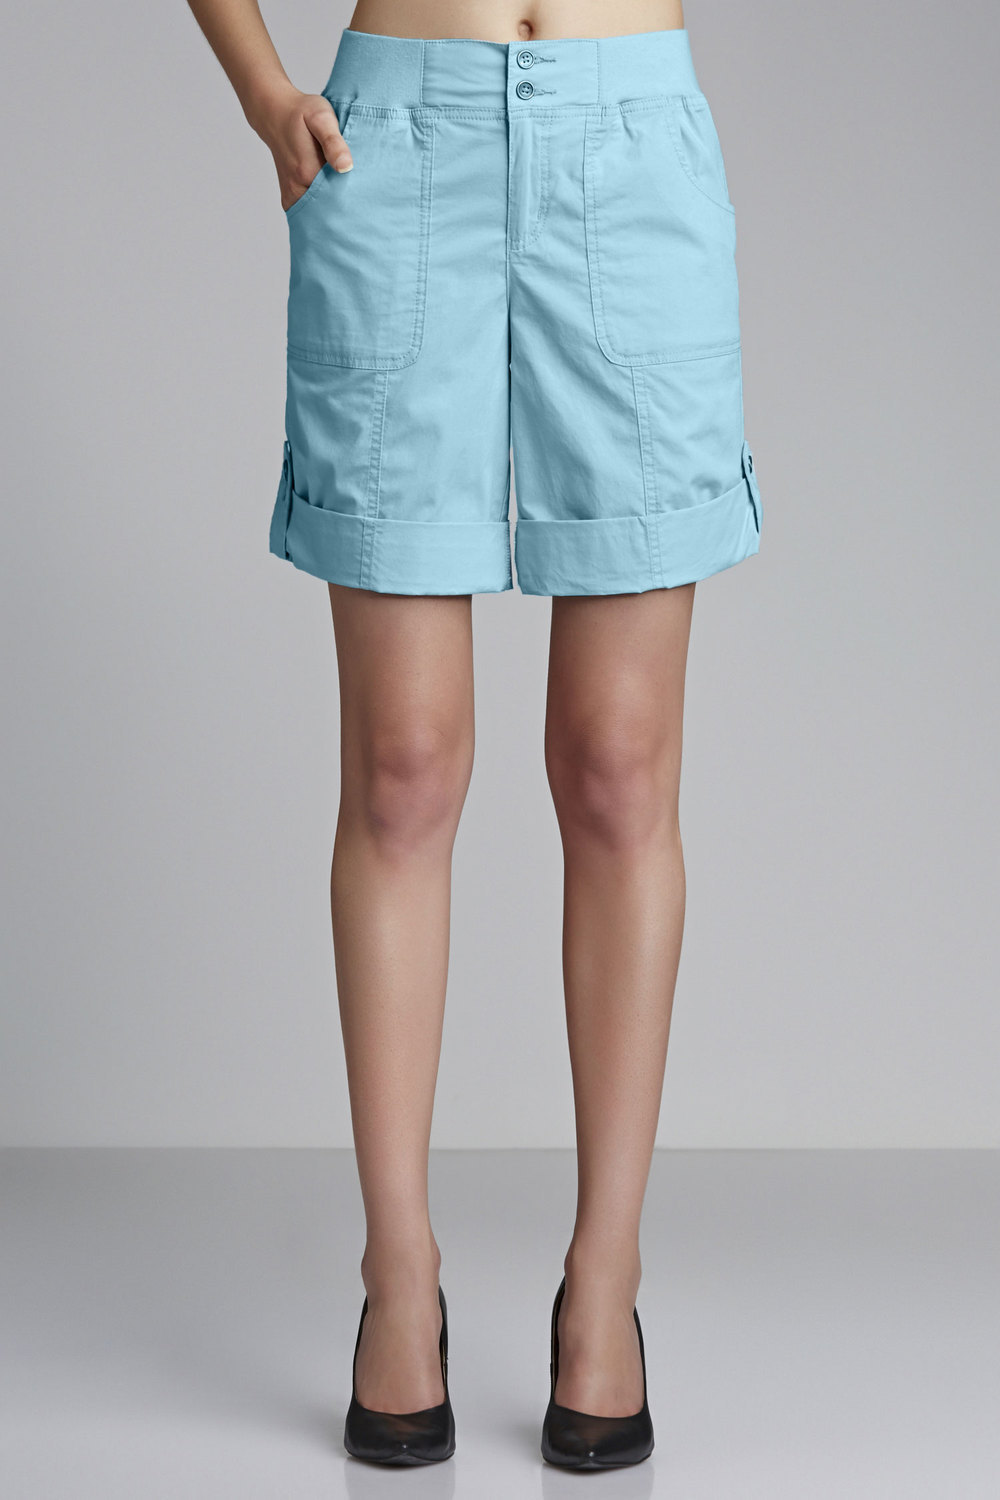 new ezibuy cargo shorts capture womens shorts womens